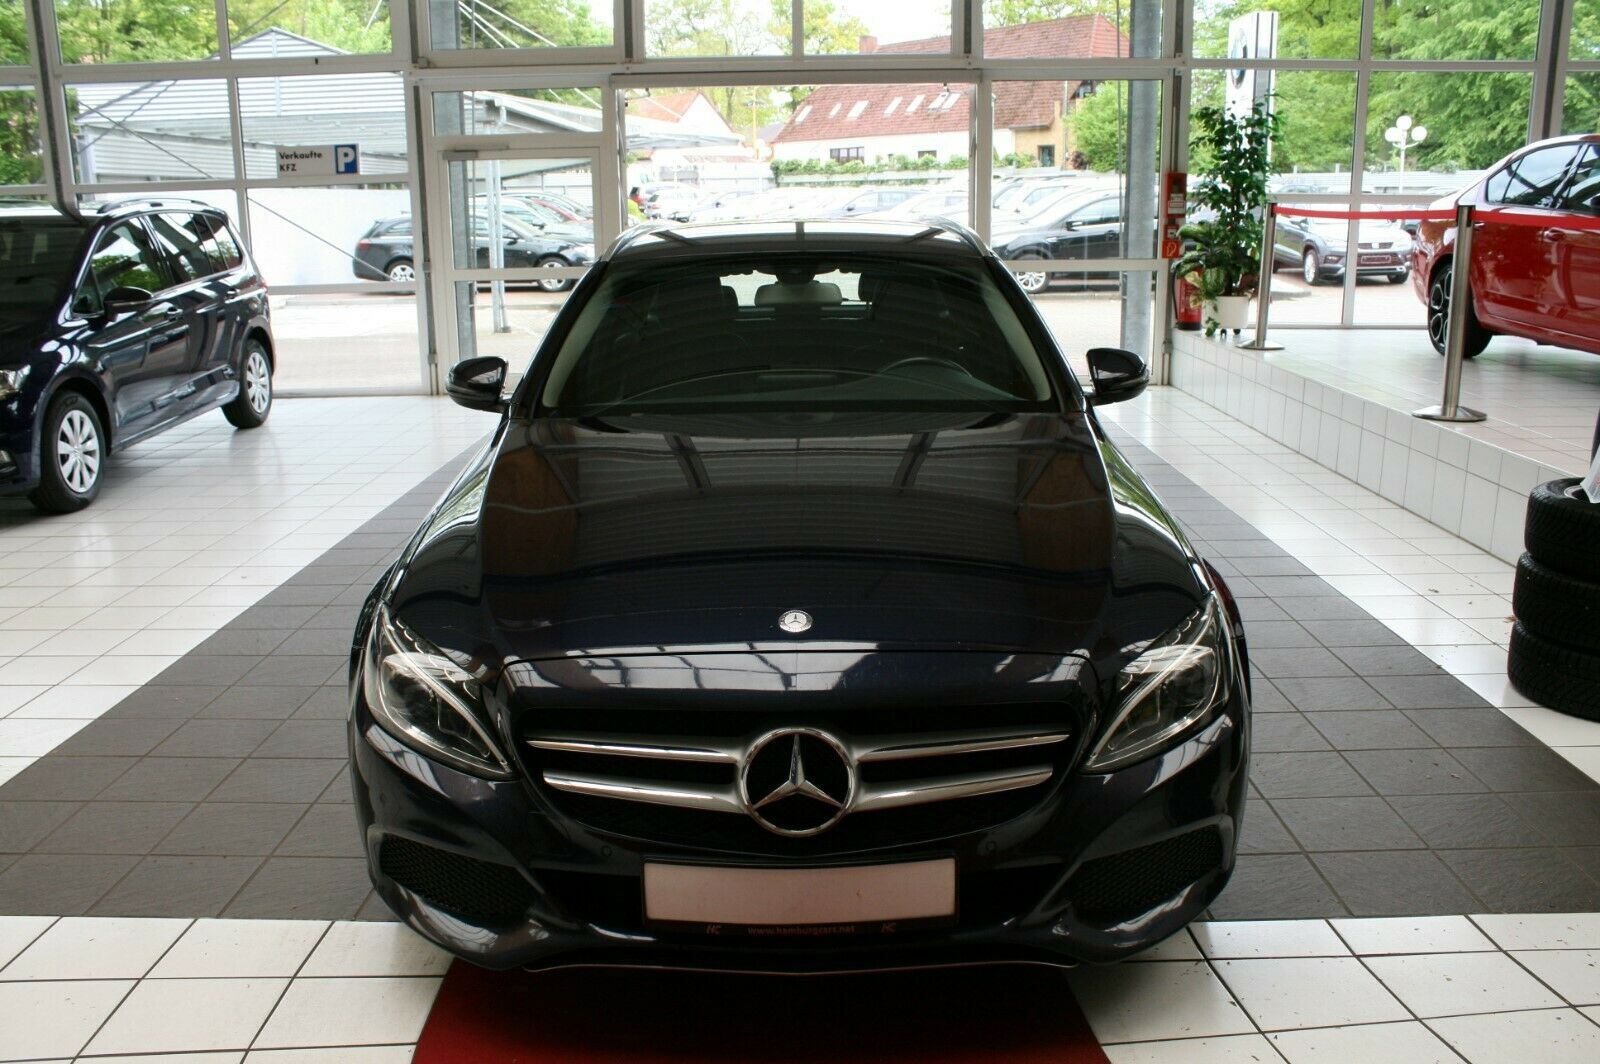 MERCEDES-BENZ C 220 T BlueTEC / d Avantgarde AHK Navi LED 1Hd